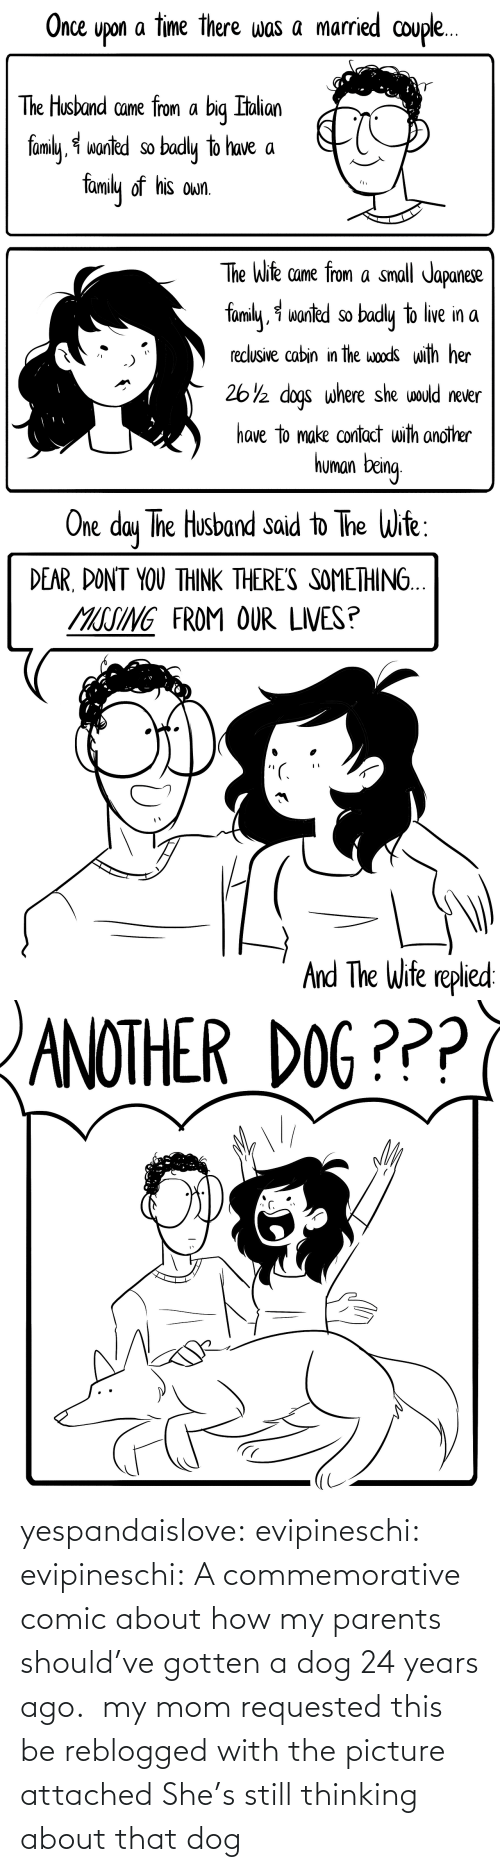 my mom: yespandaislove: evipineschi:  evipineschi: A commemorative comic about how my parents should've gotten a dog 24 years ago.  my mom requested this be reblogged with the picture attached   She's still thinking about that dog